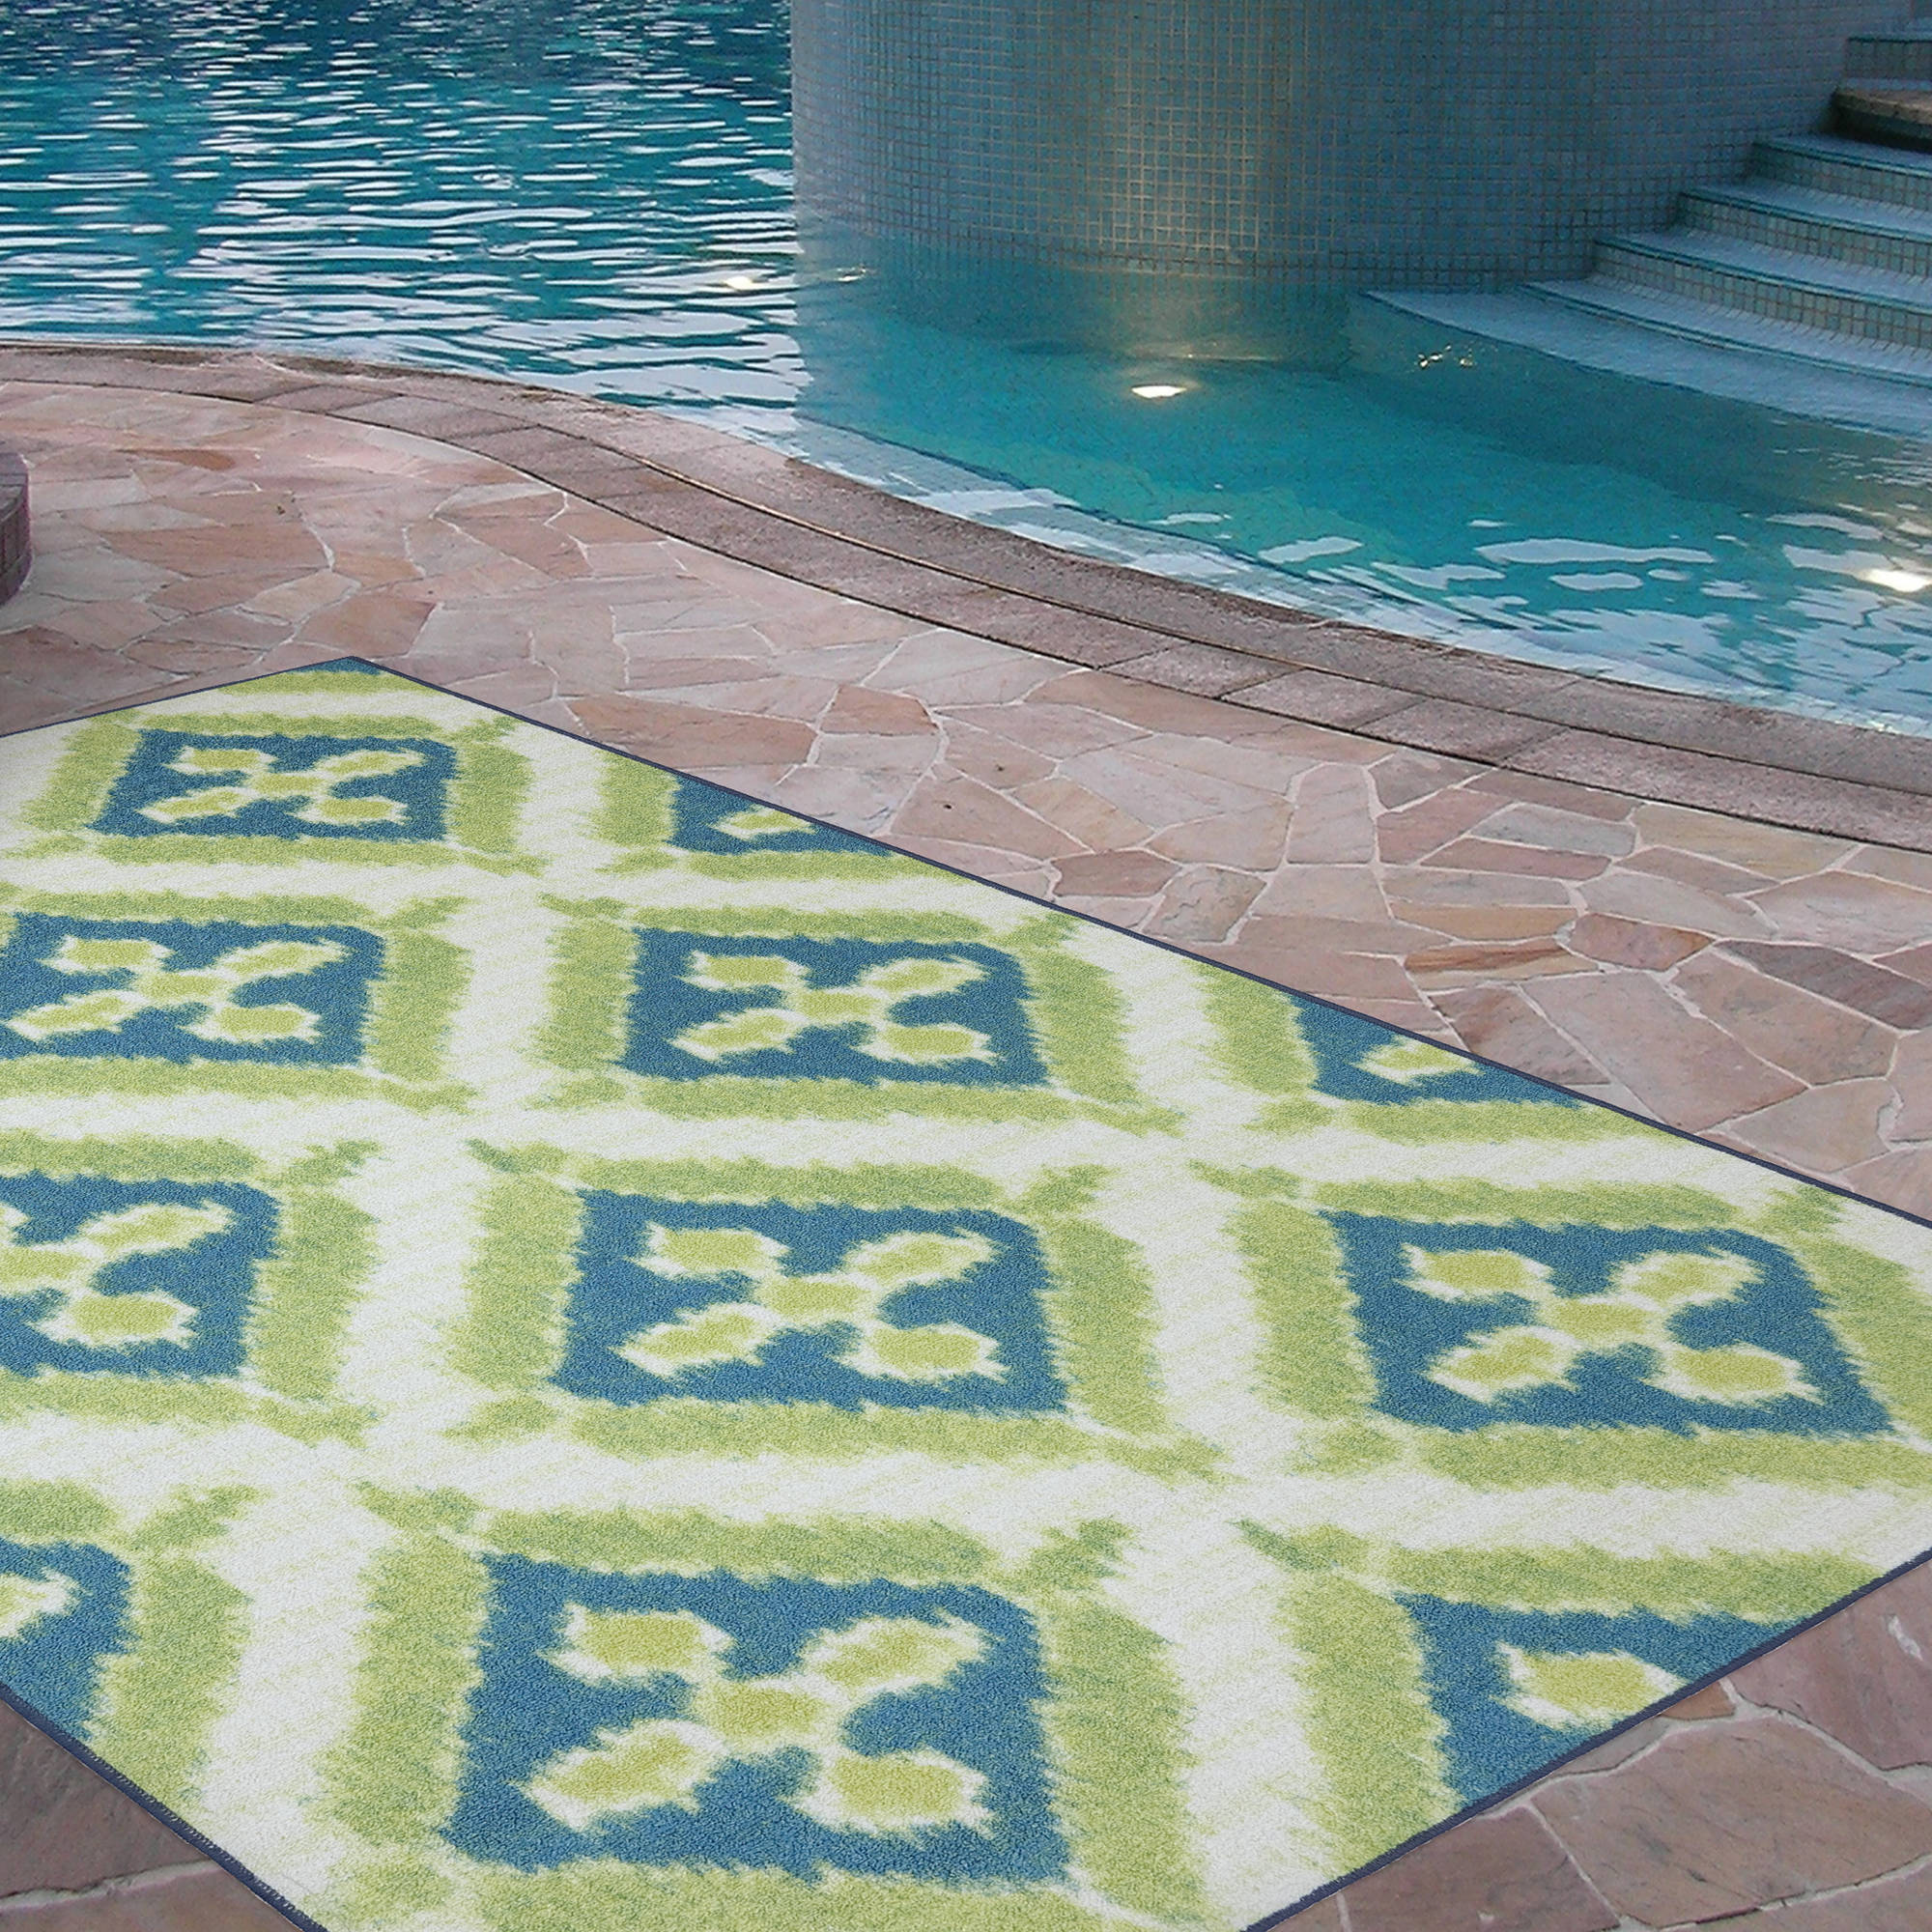 Mohawk Home Summer Splash Indoor/Outdoor Nylon Rug, Turquoise